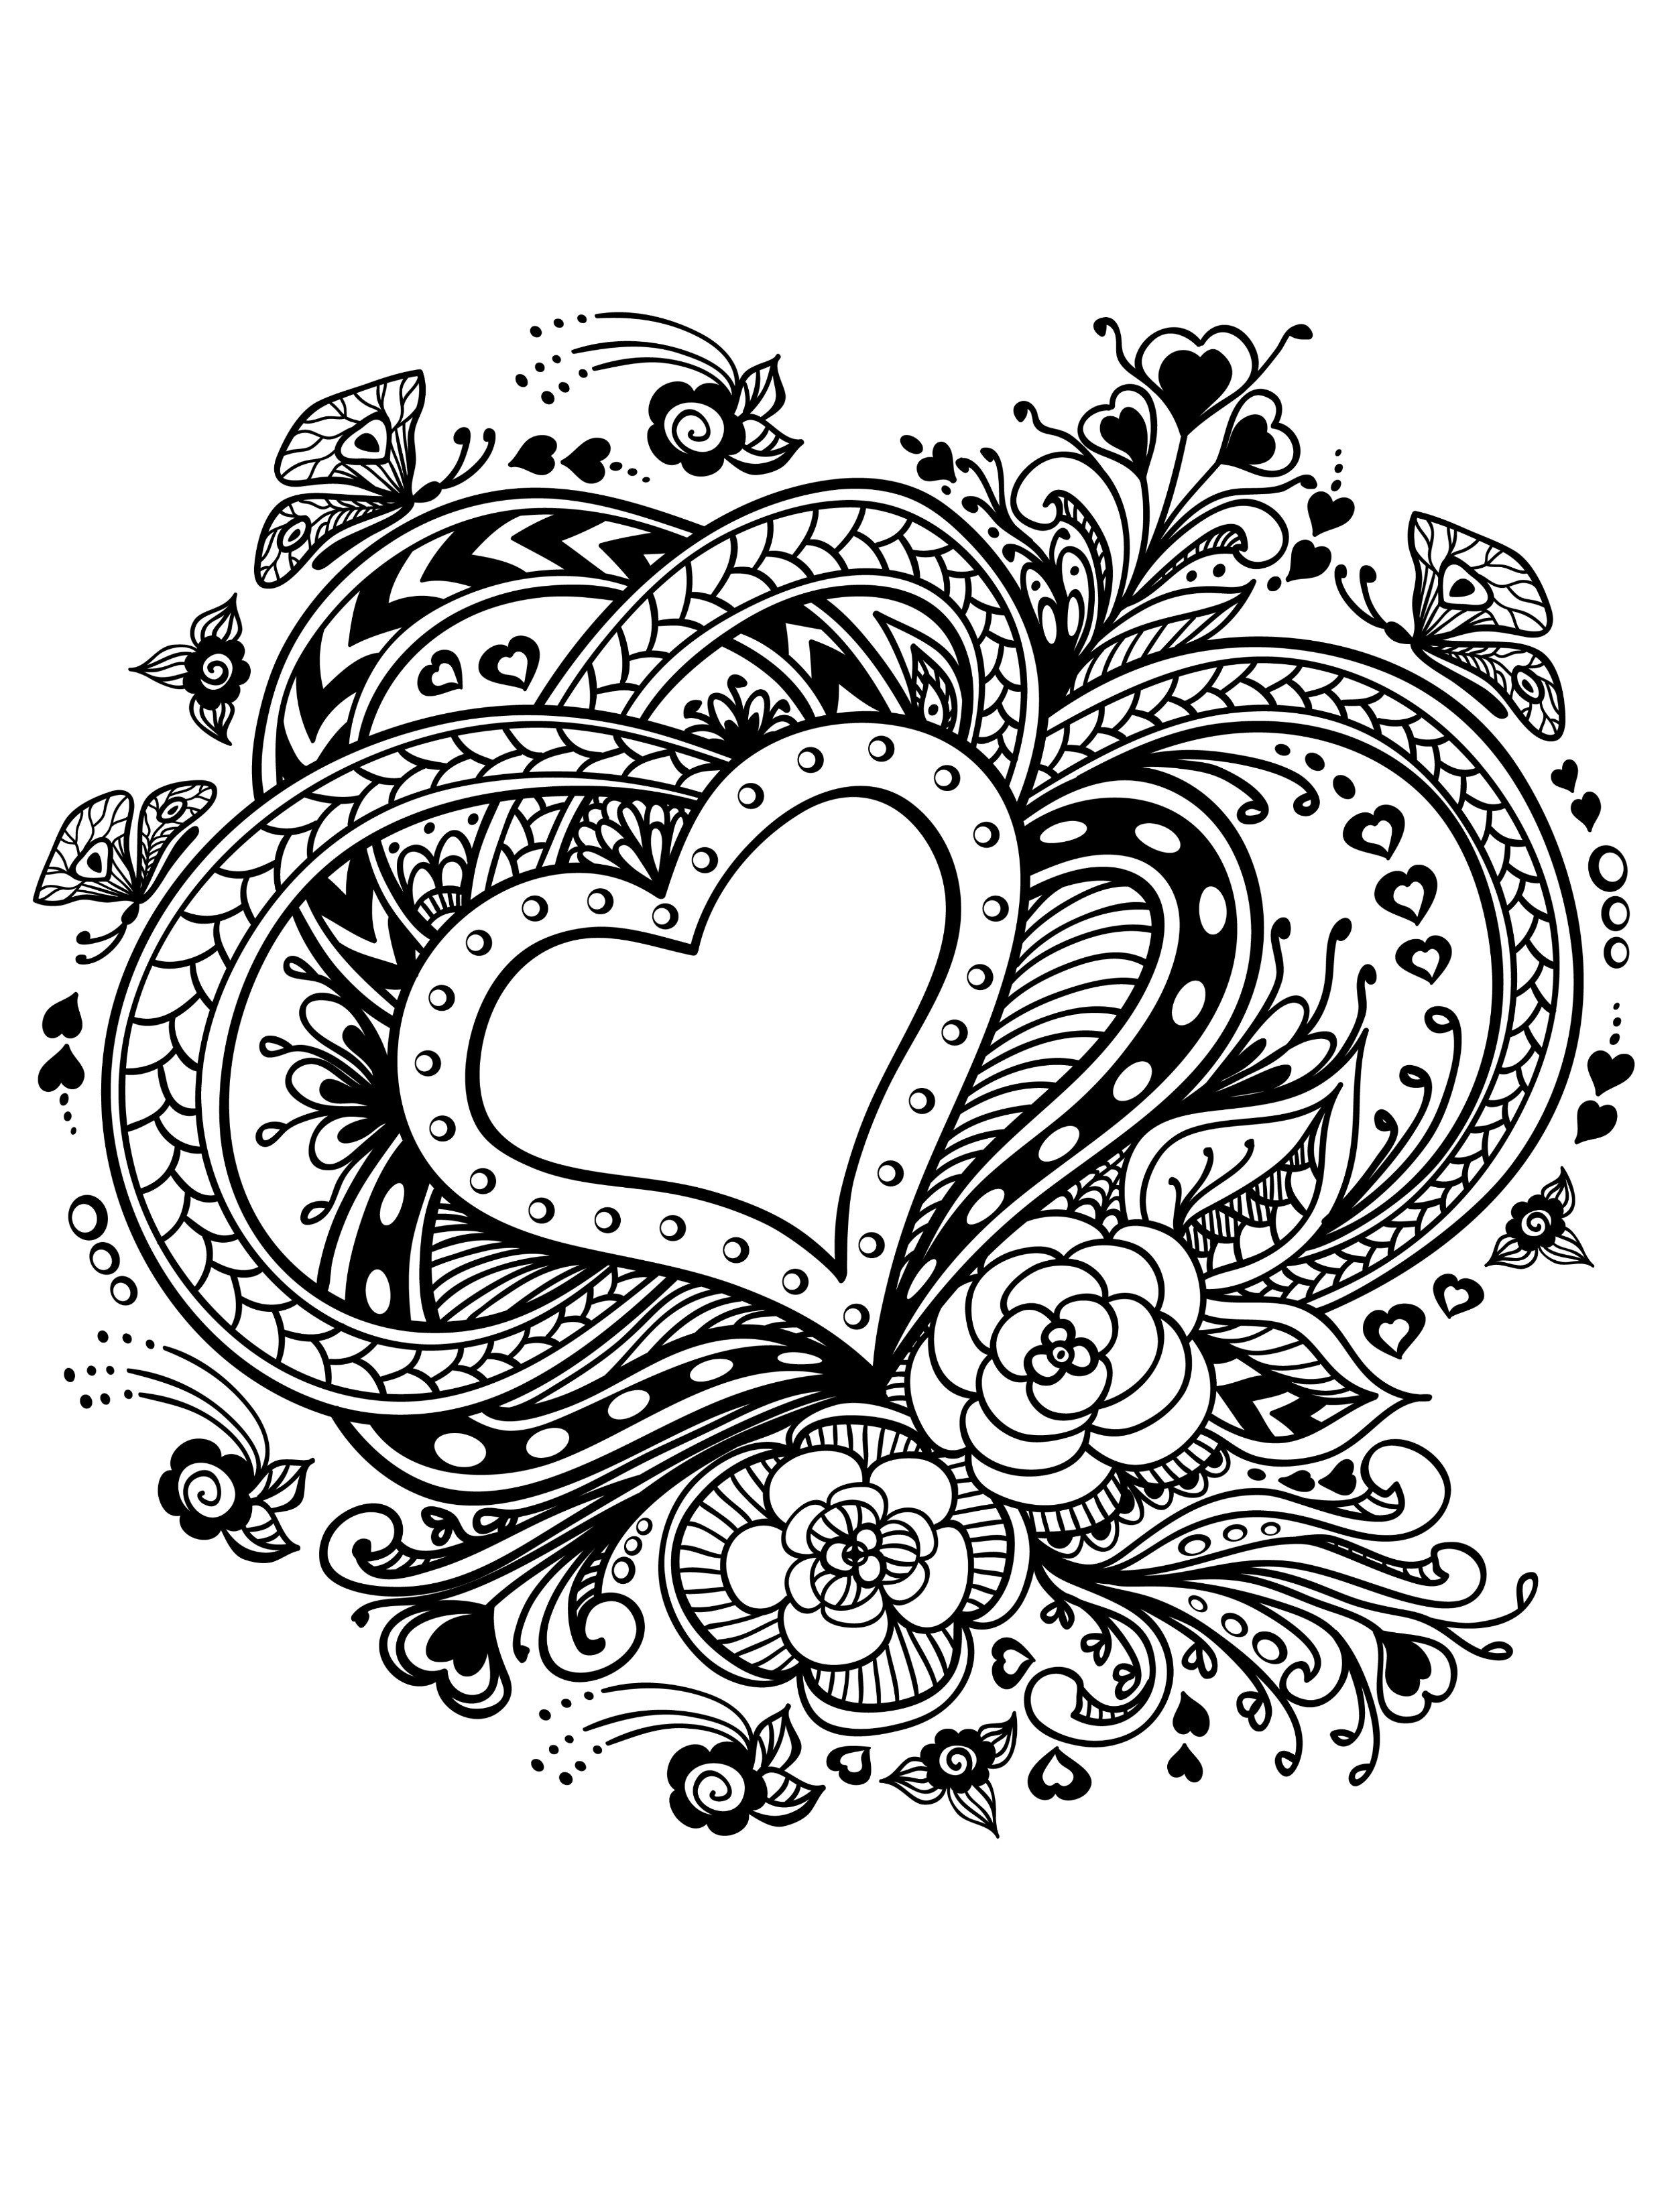 20 Free Printable Valentines Adult Coloring Pages | Coloring Pages - Free Printable Heart Coloring Pages